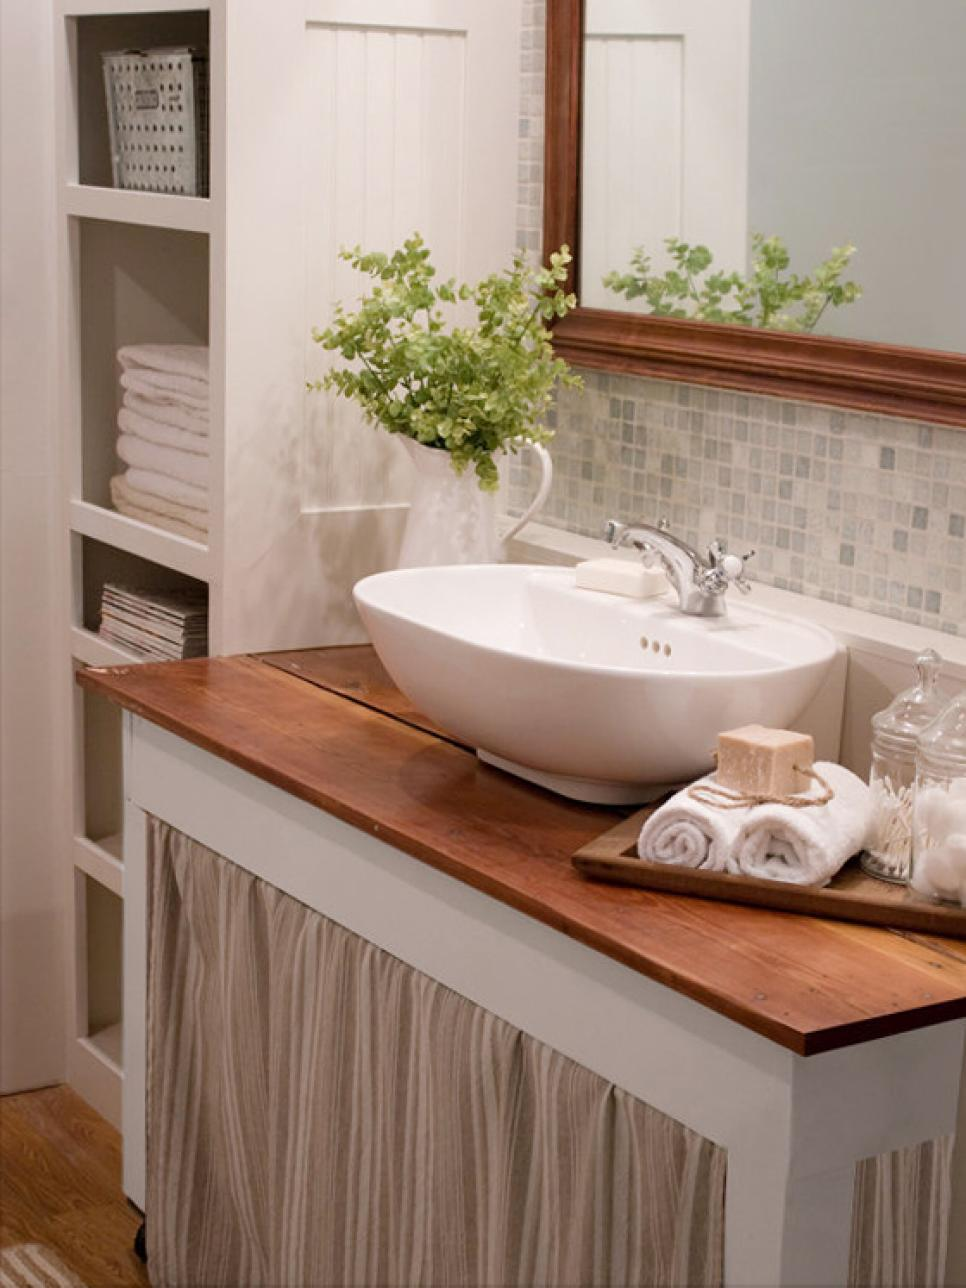 Design Ideas For Small Bathrooms small bathroom design ideas small bathroom design ideas 20 Small Bathroom Design Ideas Bathroom Ideas Designs Hgtv